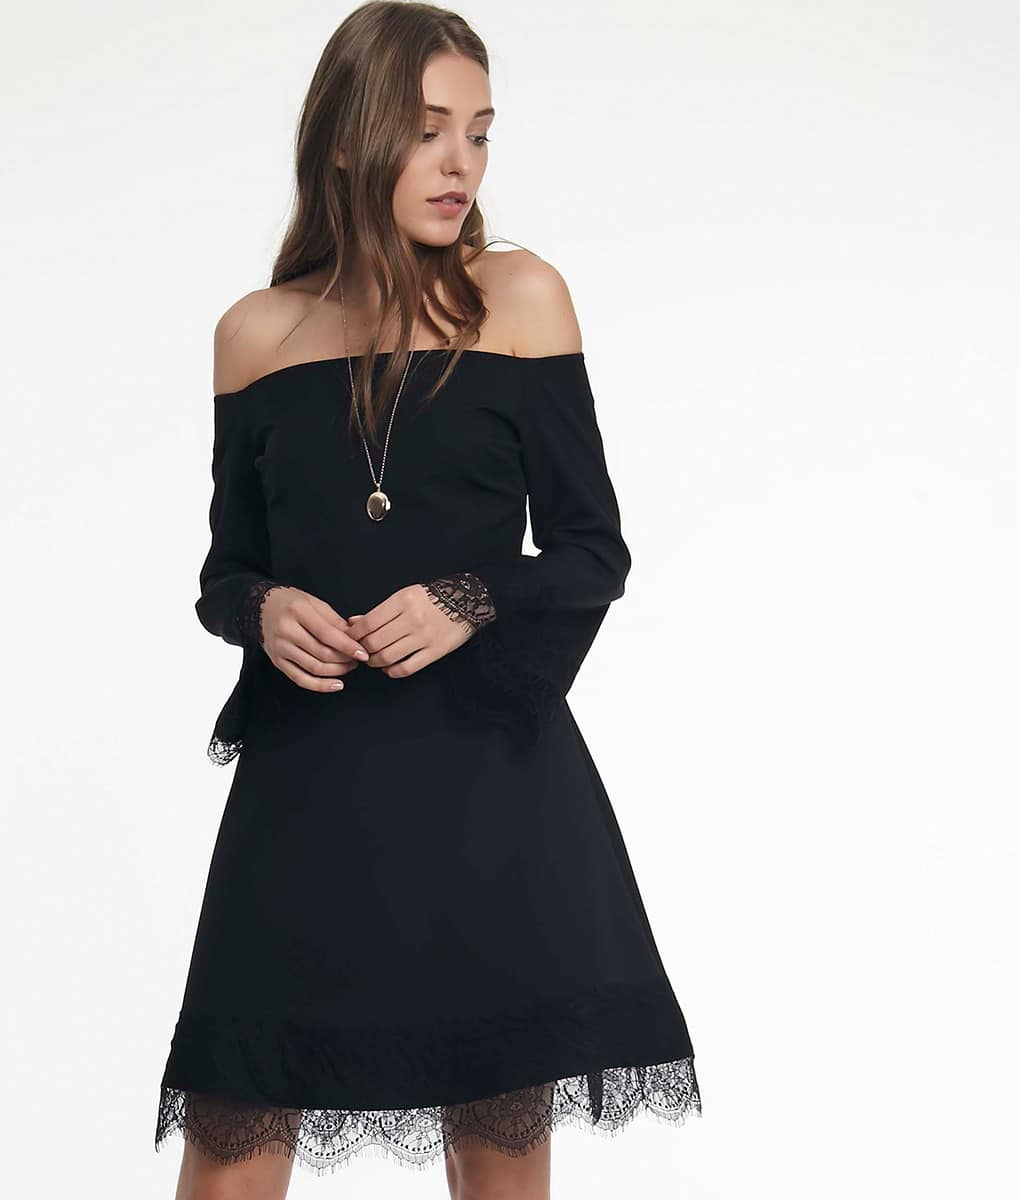 Alila-Black-off-the-shoulder-lace-trim-dress-Setre-LBD